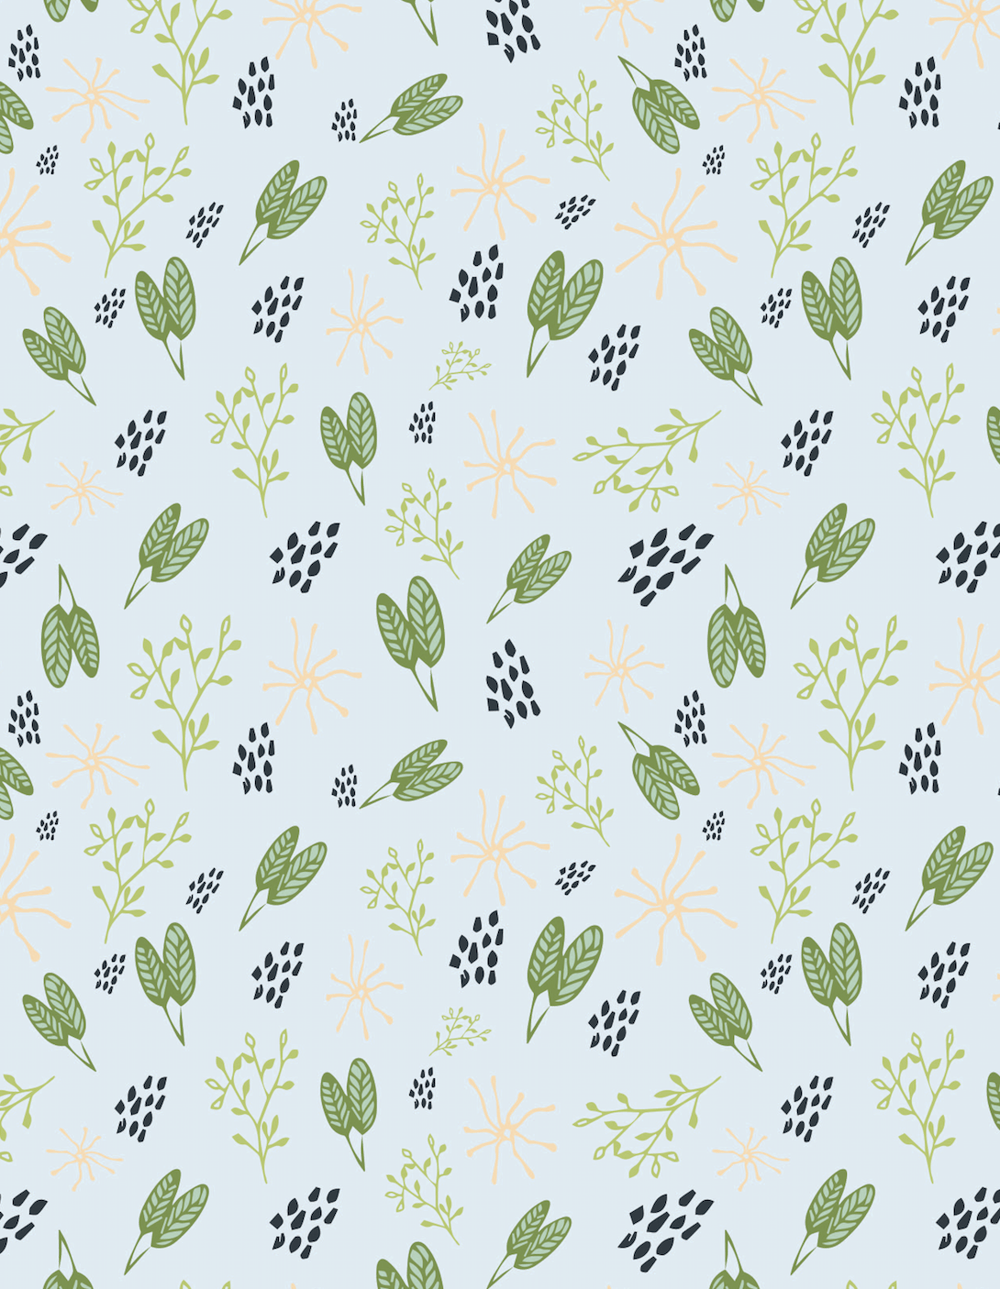 Surface Pattern Design 1 - image 5 - student project